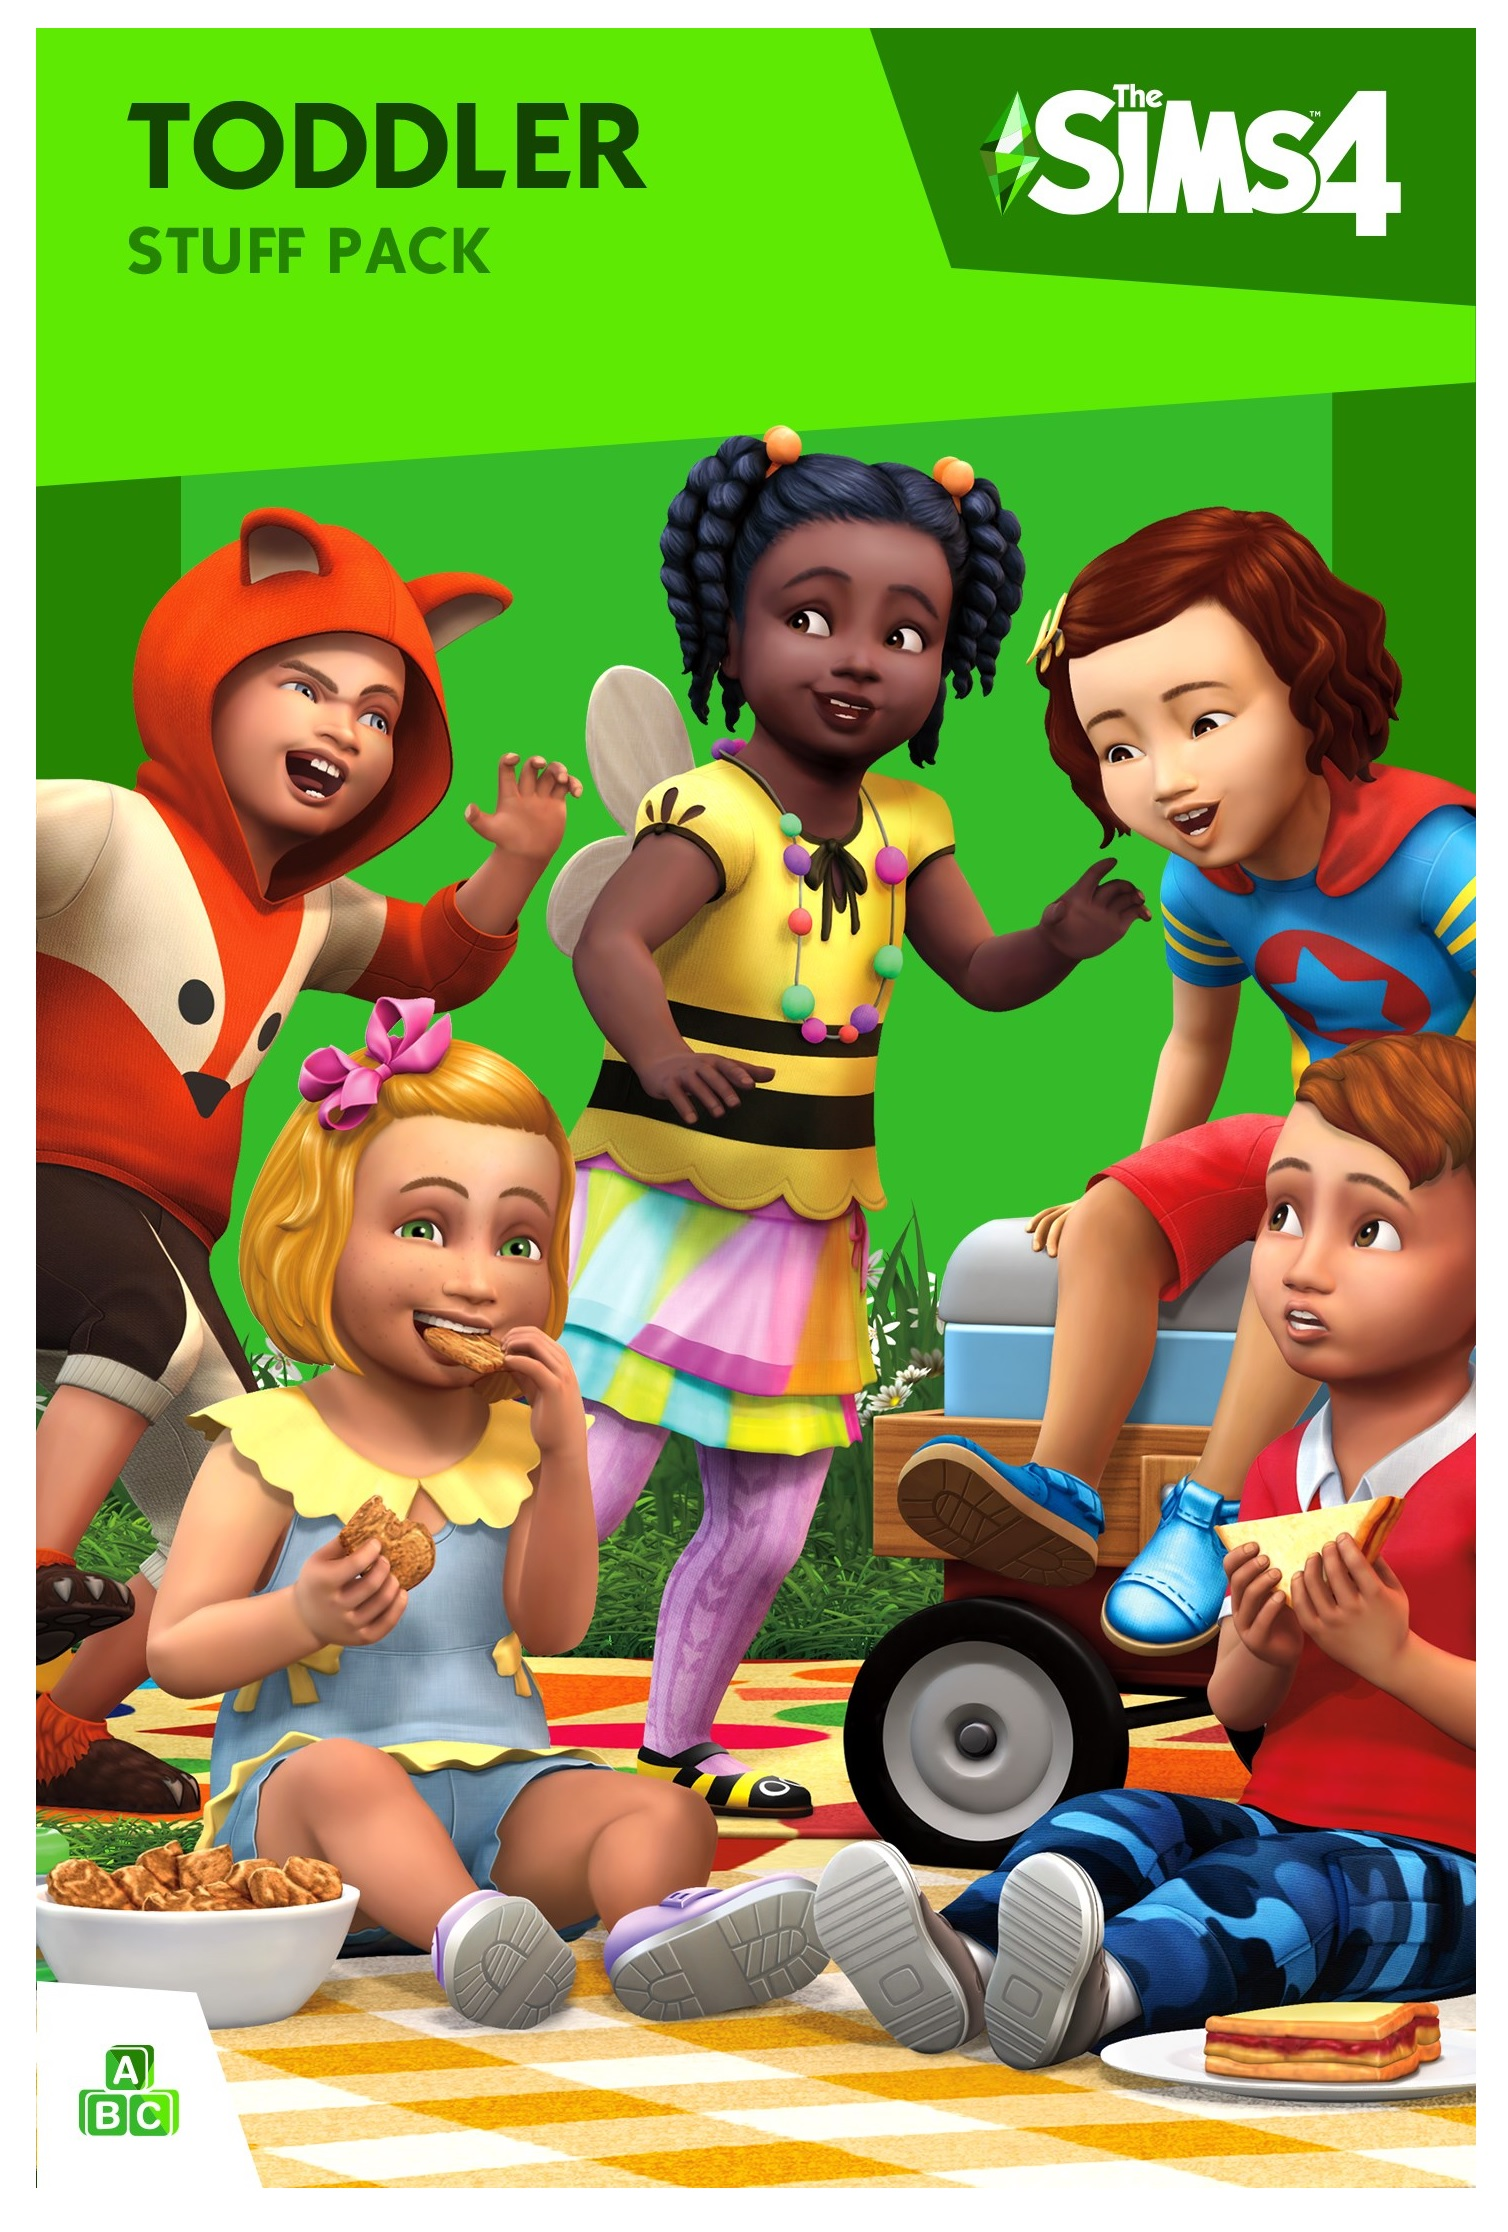 Electronic Arts The Sims 4 Toddler Stuff Pack PC Game